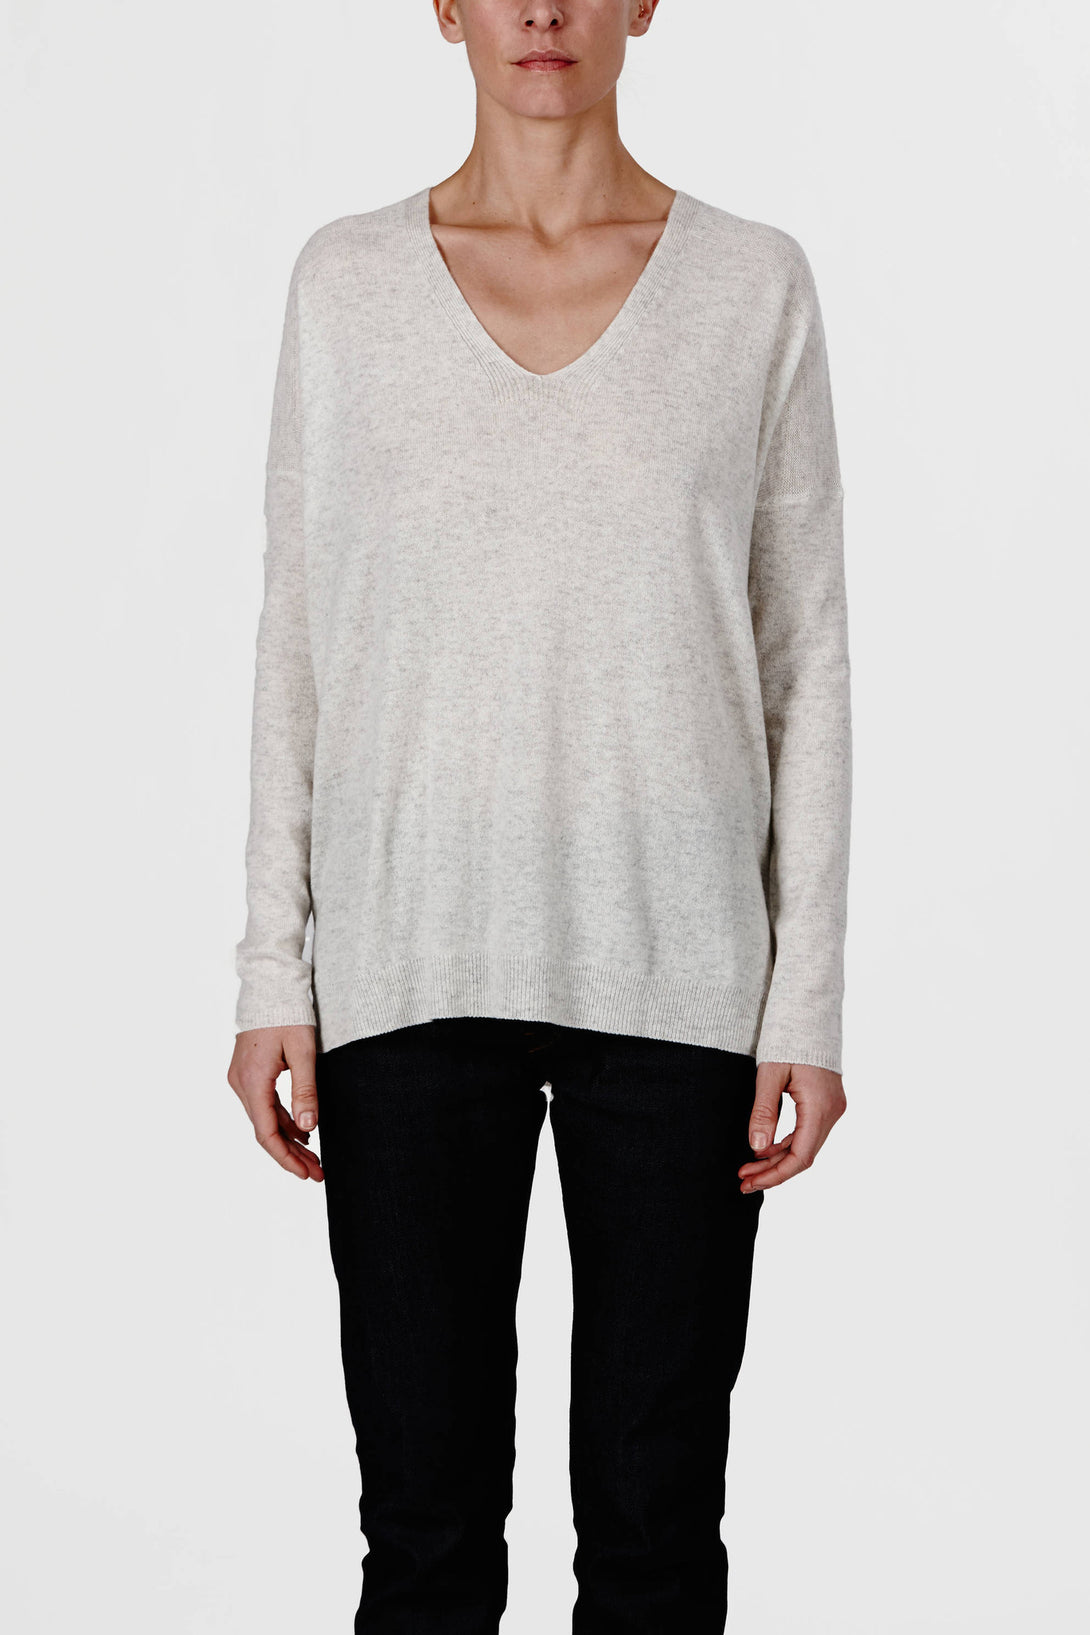 Cashmere Rack Stitch V-Neck - H Cloud